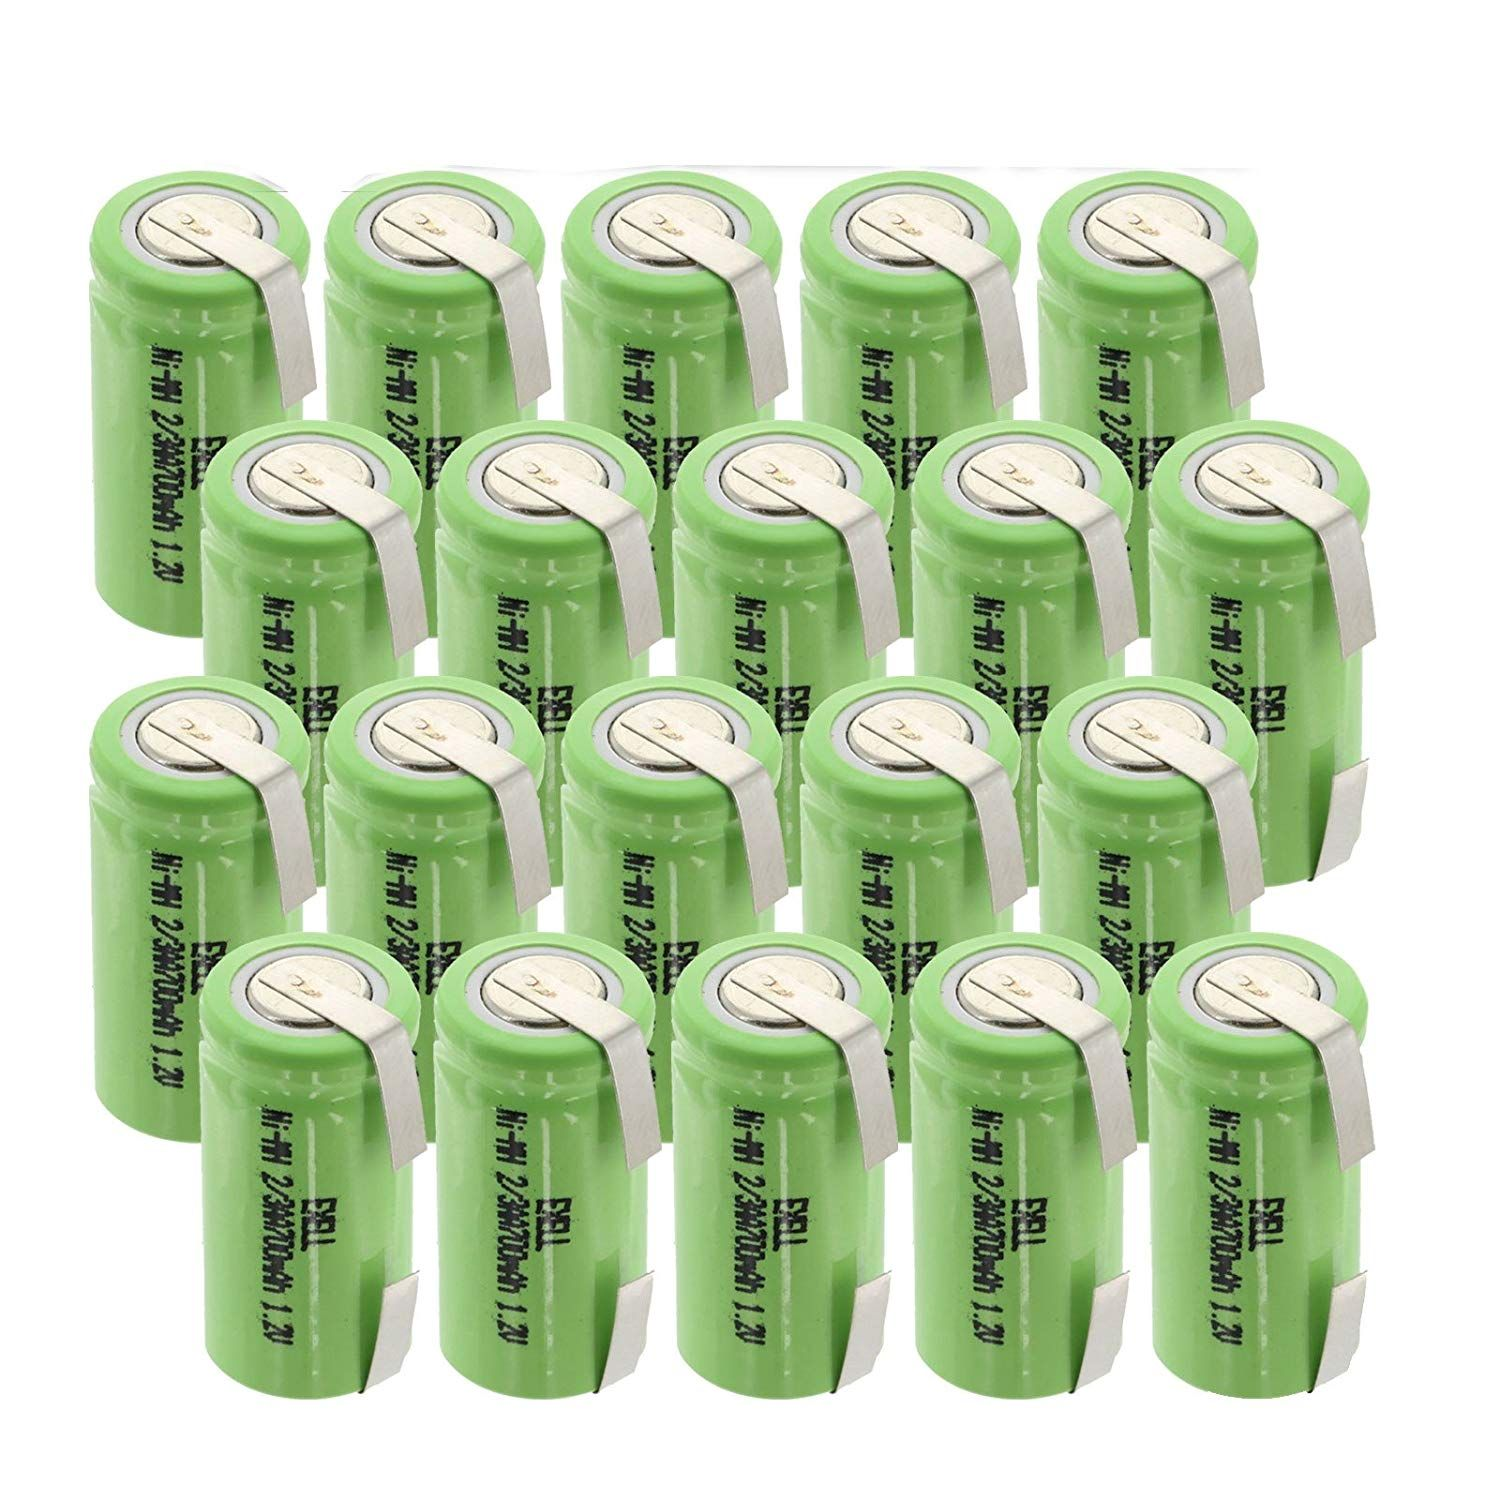 20x Exell 1 2v 2 3aa Size 700mah Nimh Rechargeable Batteries W Tabs Use With High Power Static Applications Telecoms Ups And Smart Grid Rechargeable Batteries